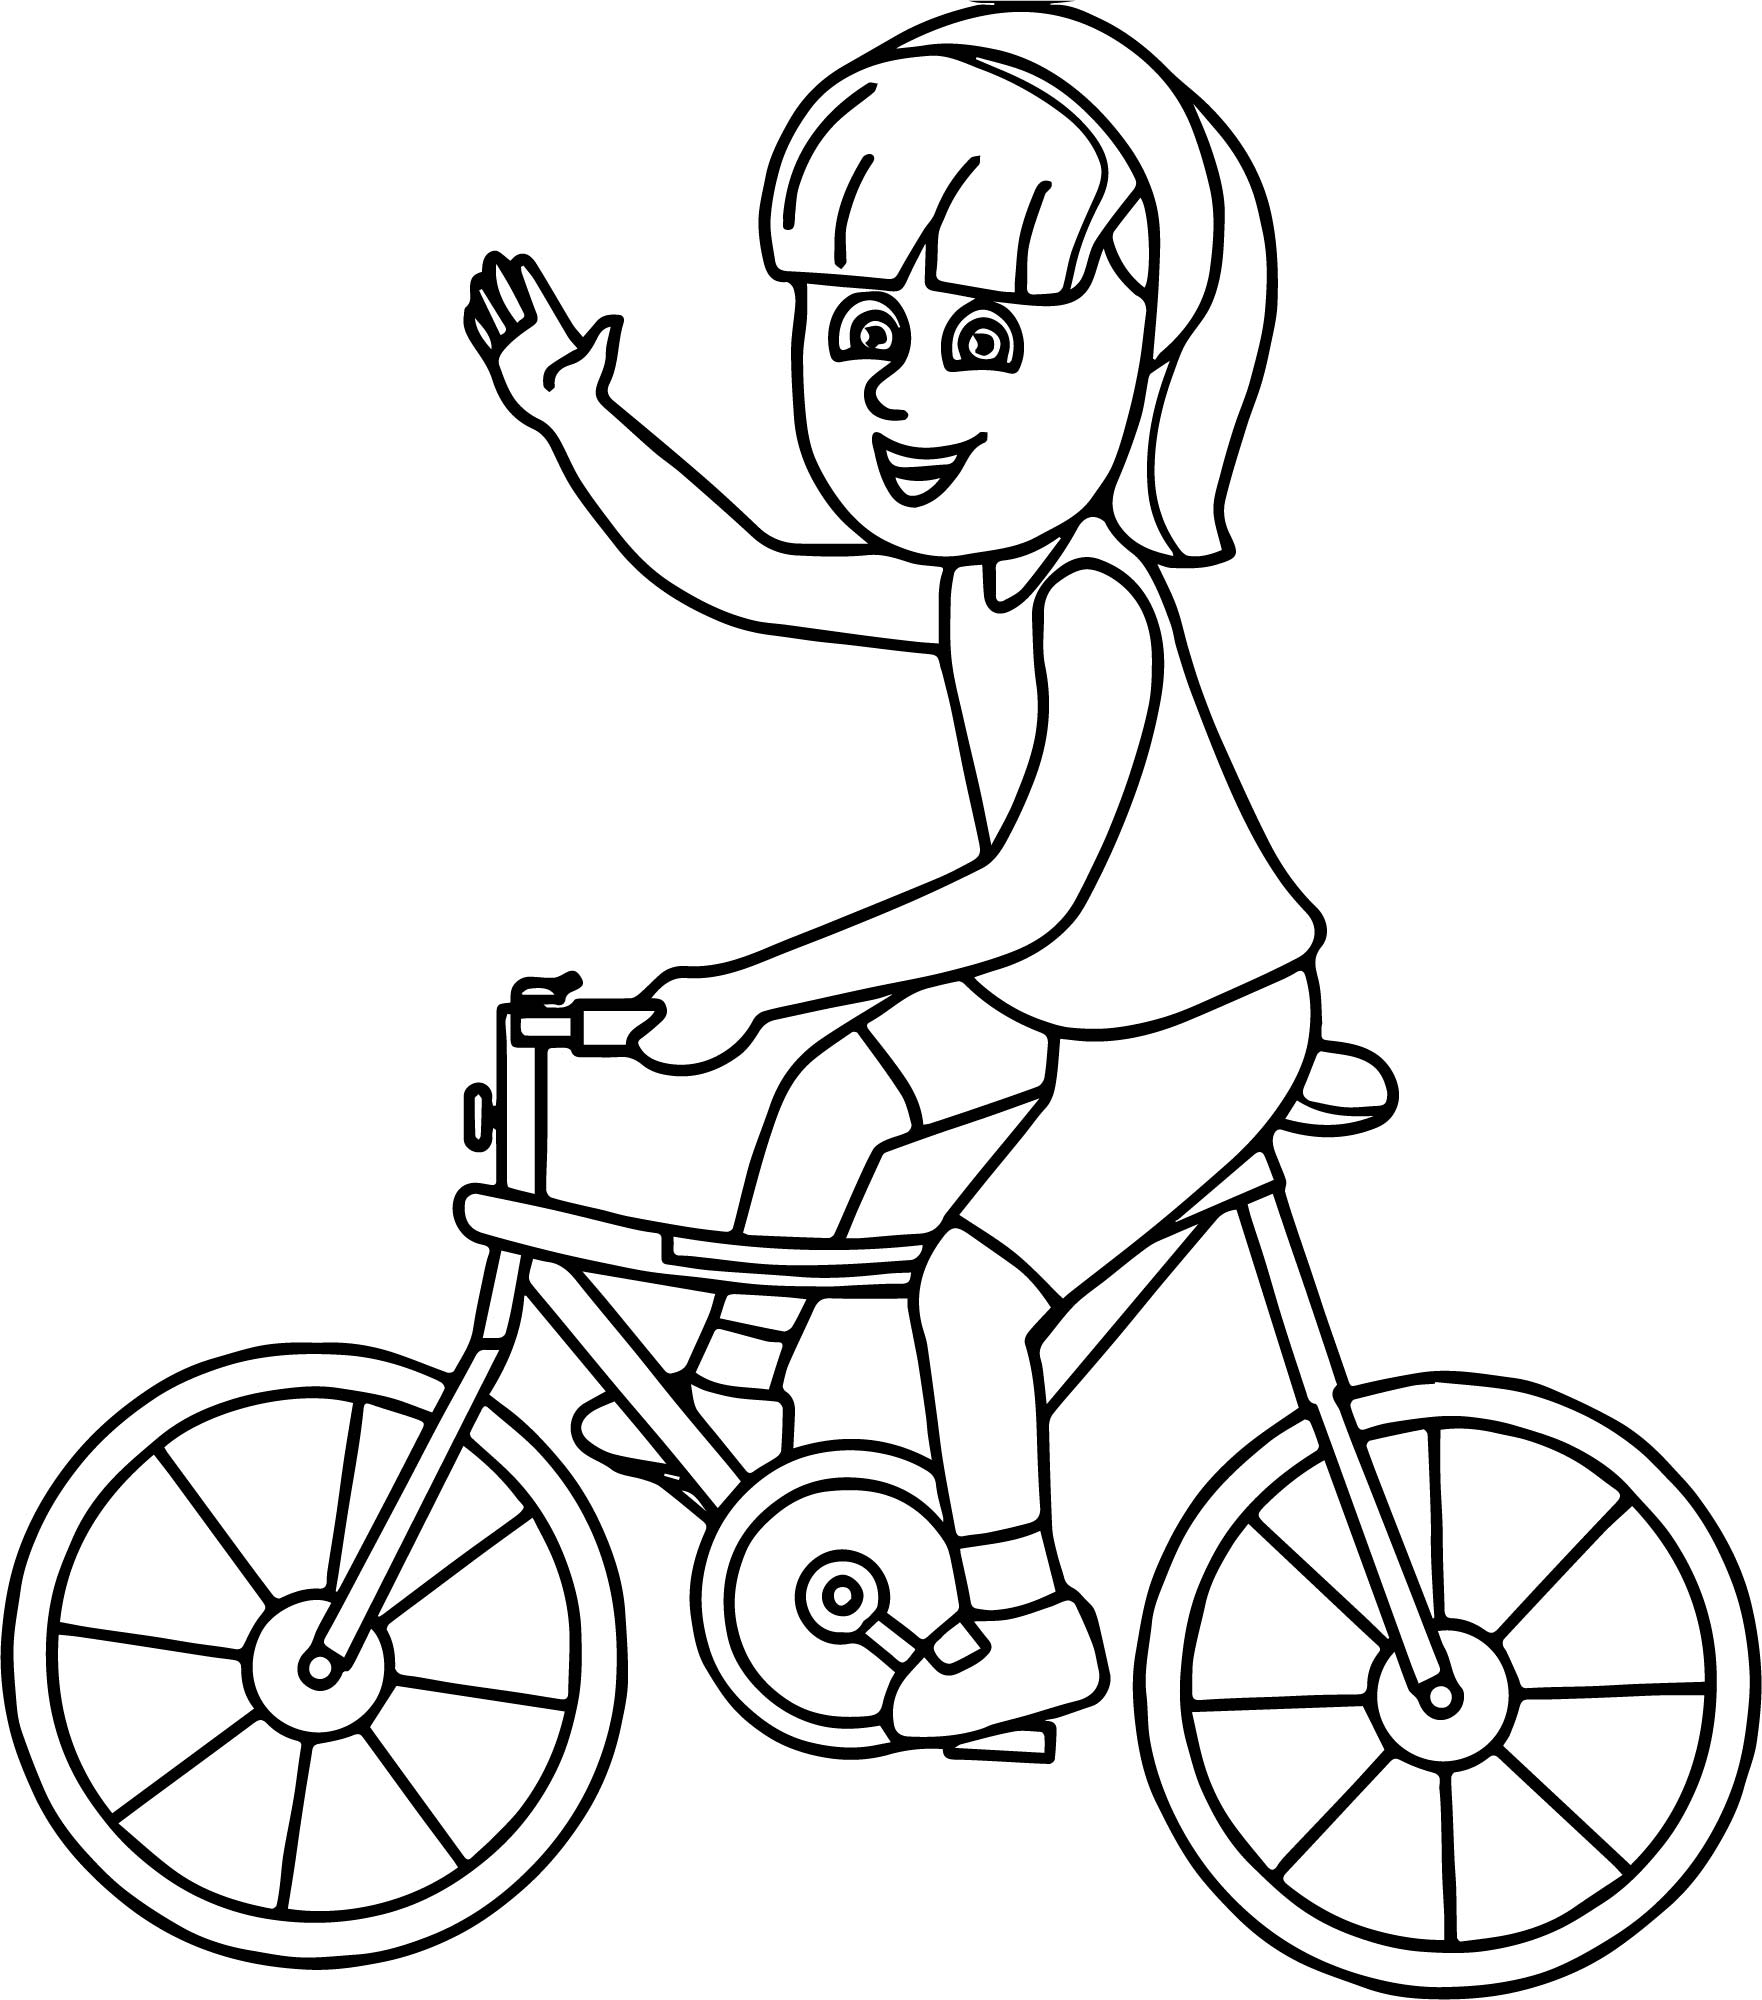 bike coloring pages street bike coloring pages at getdrawings free download coloring bike pages